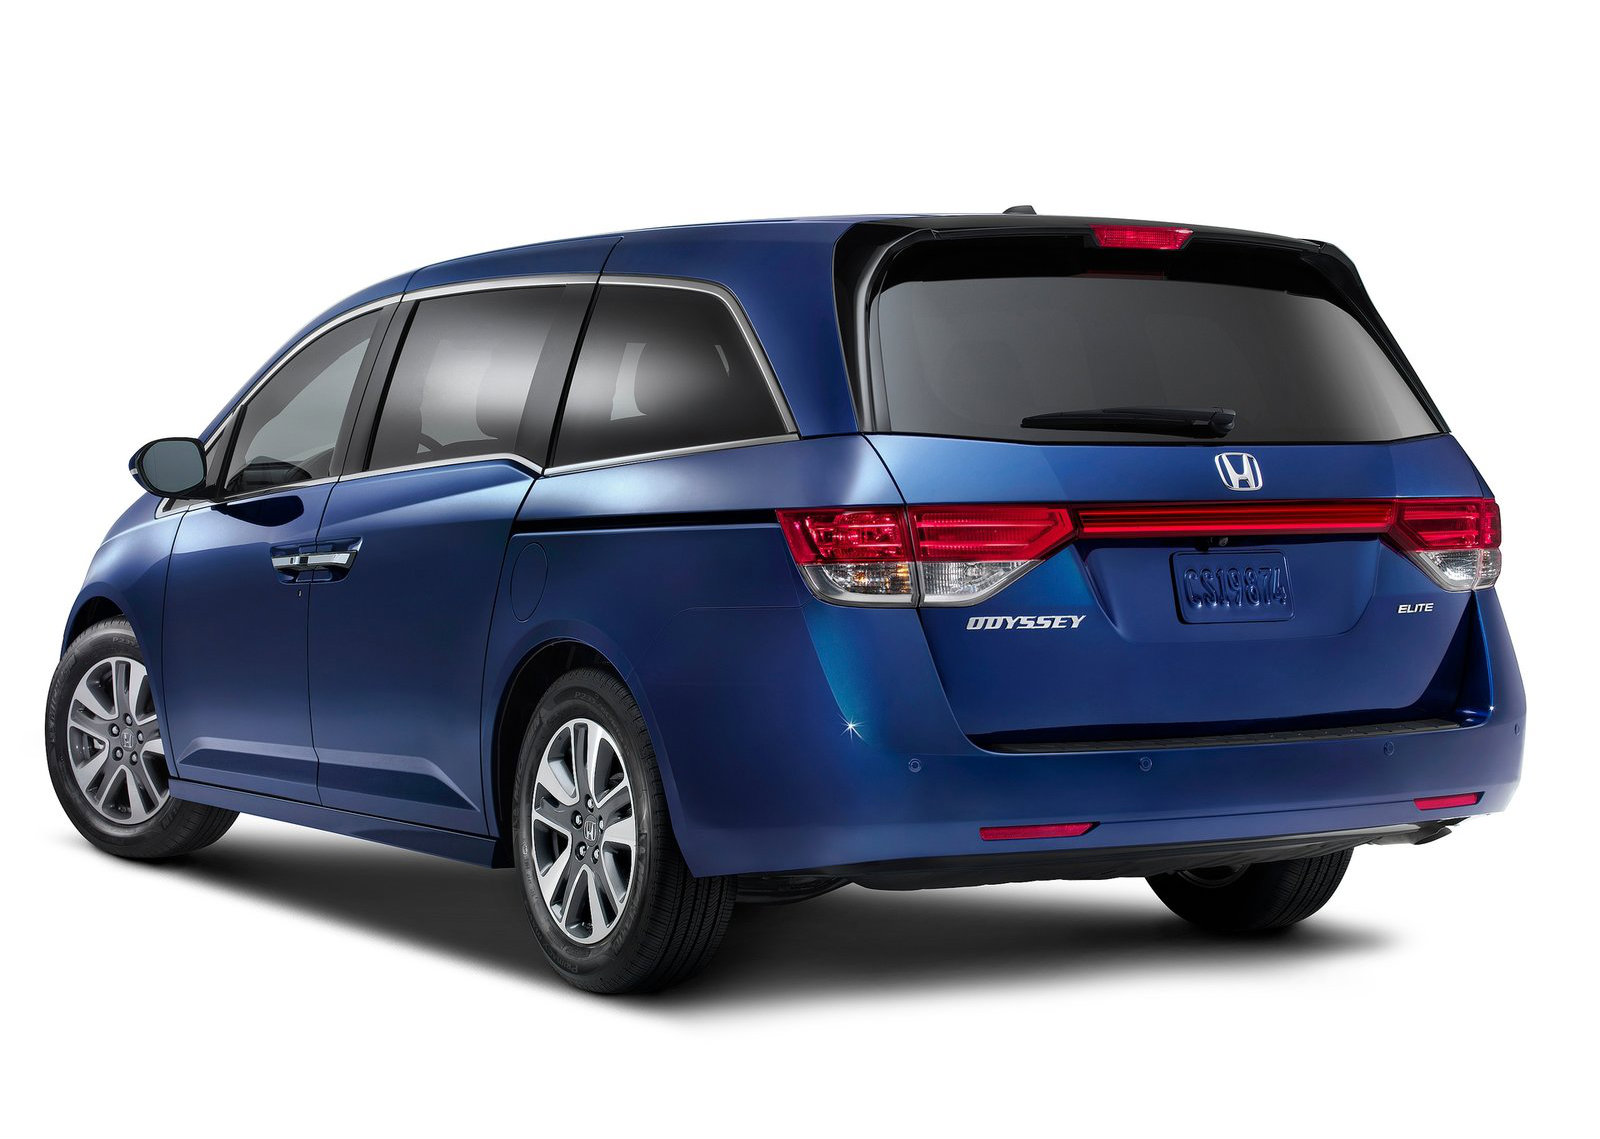 2015 Honda Odyssey Now On Sale, Starts from $28,975 - autoevolution